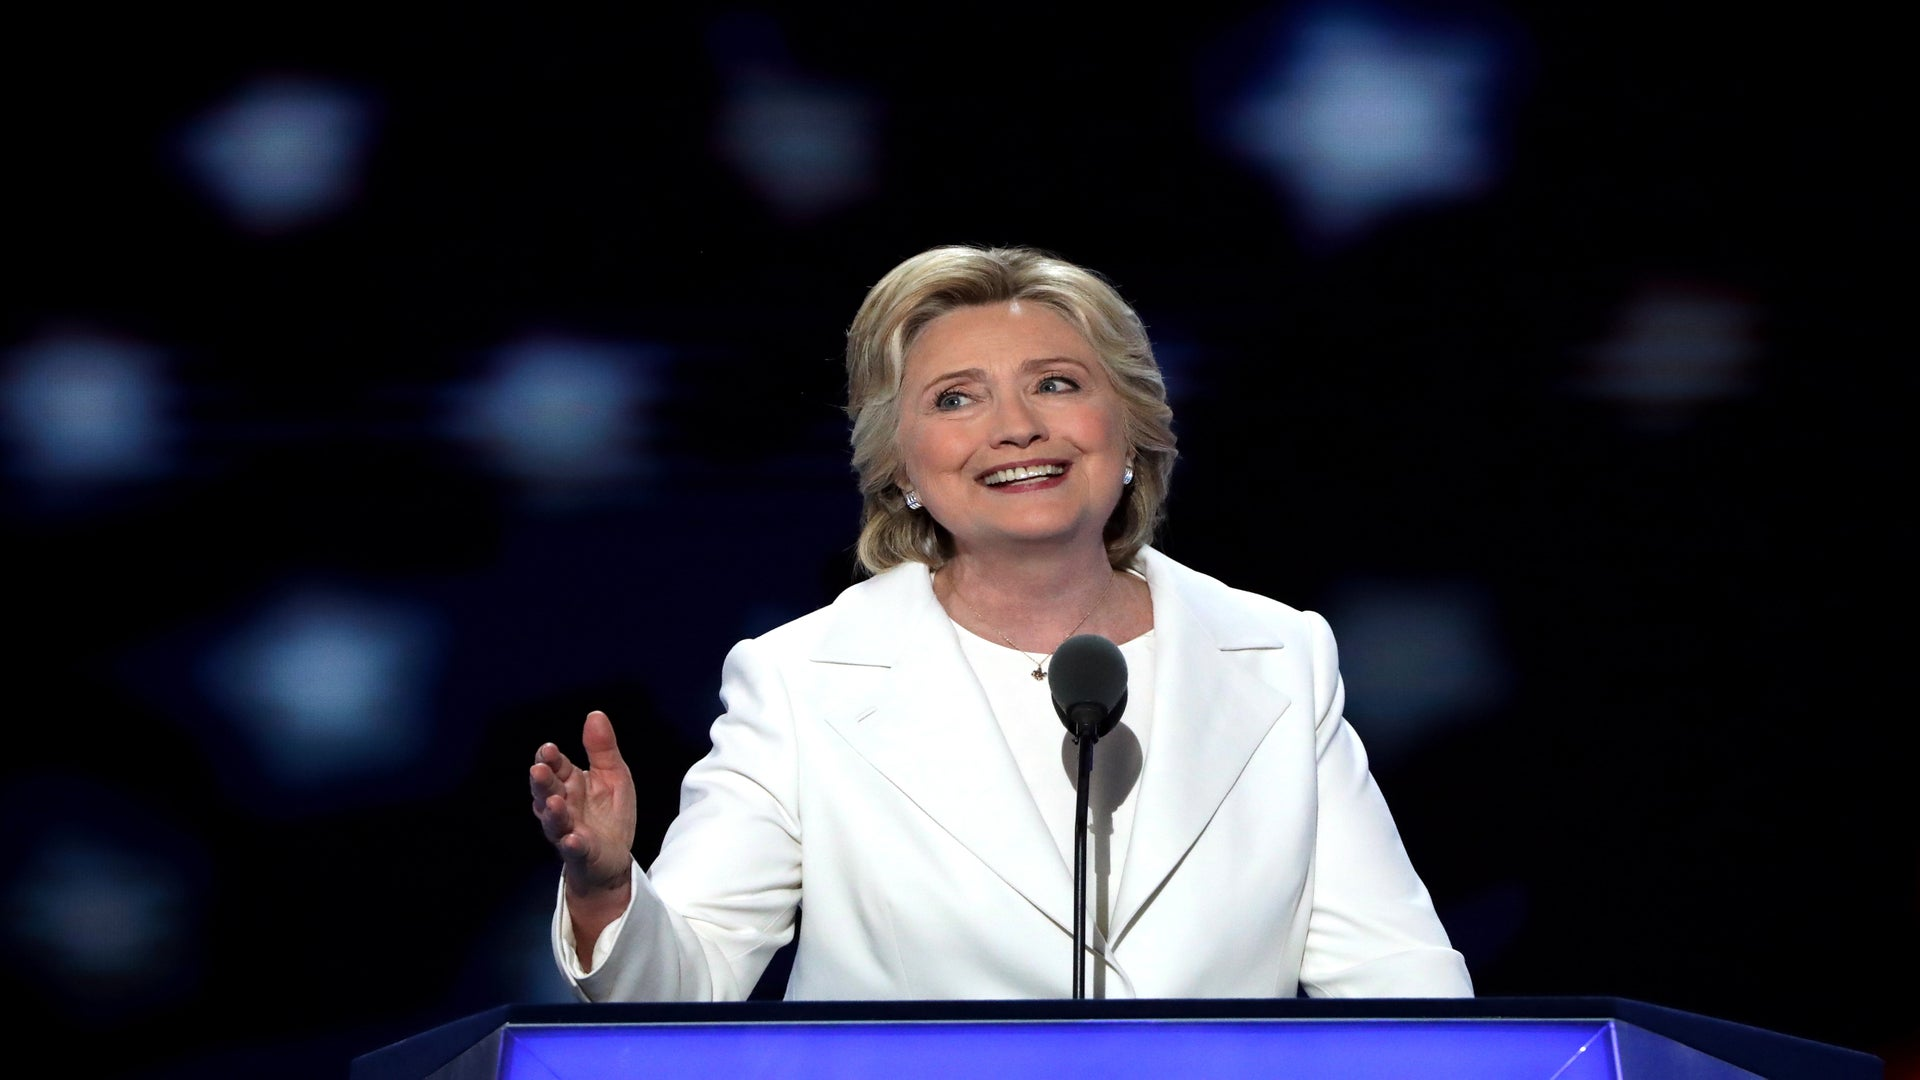 HERstory! Hillary Clinton Accepts Democratic Presidential Nomination